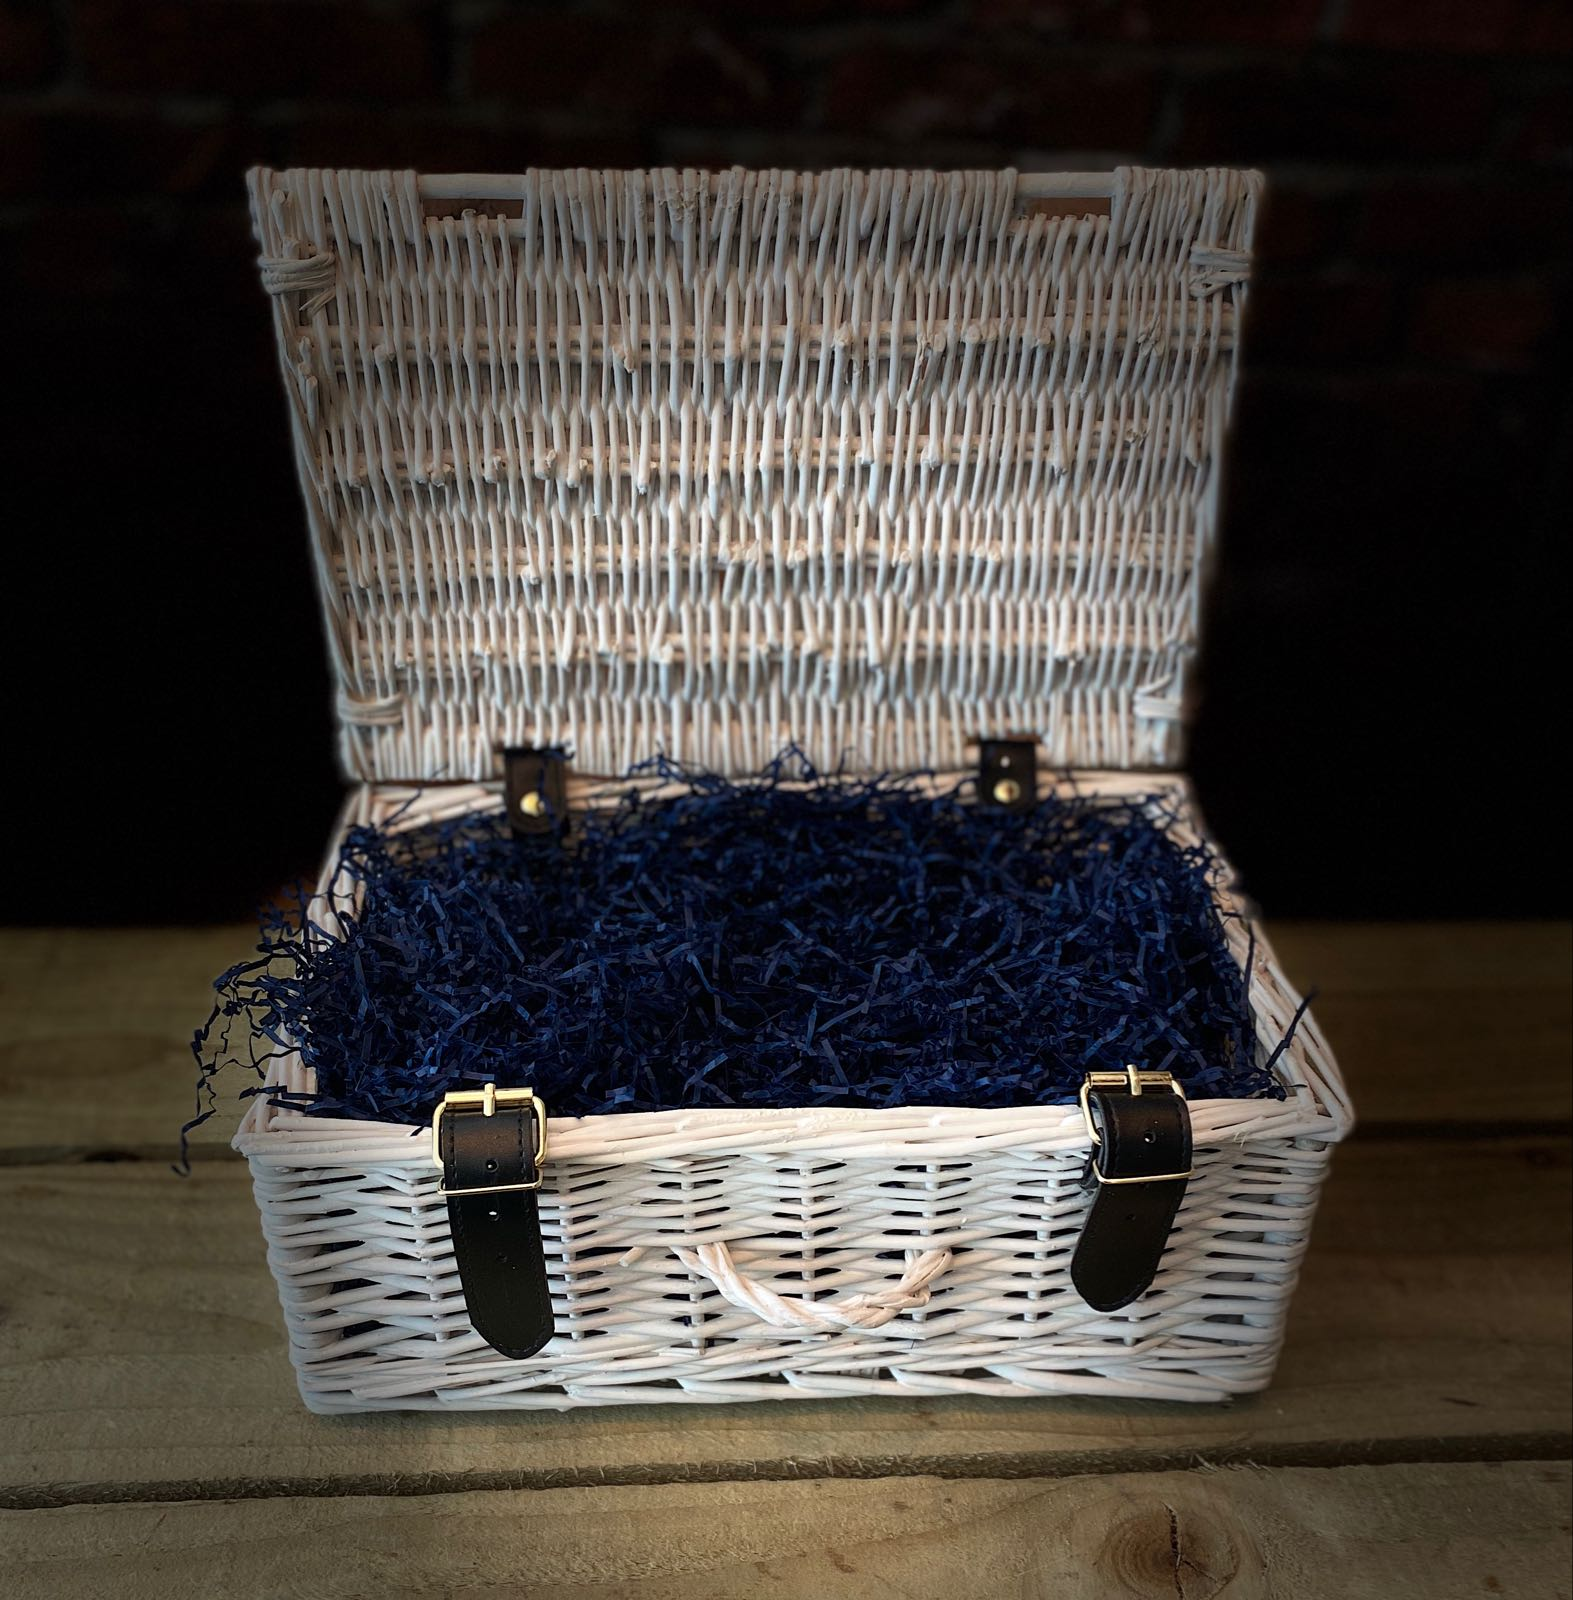 Large Wicker Suitcase - Select and build your own hamper!